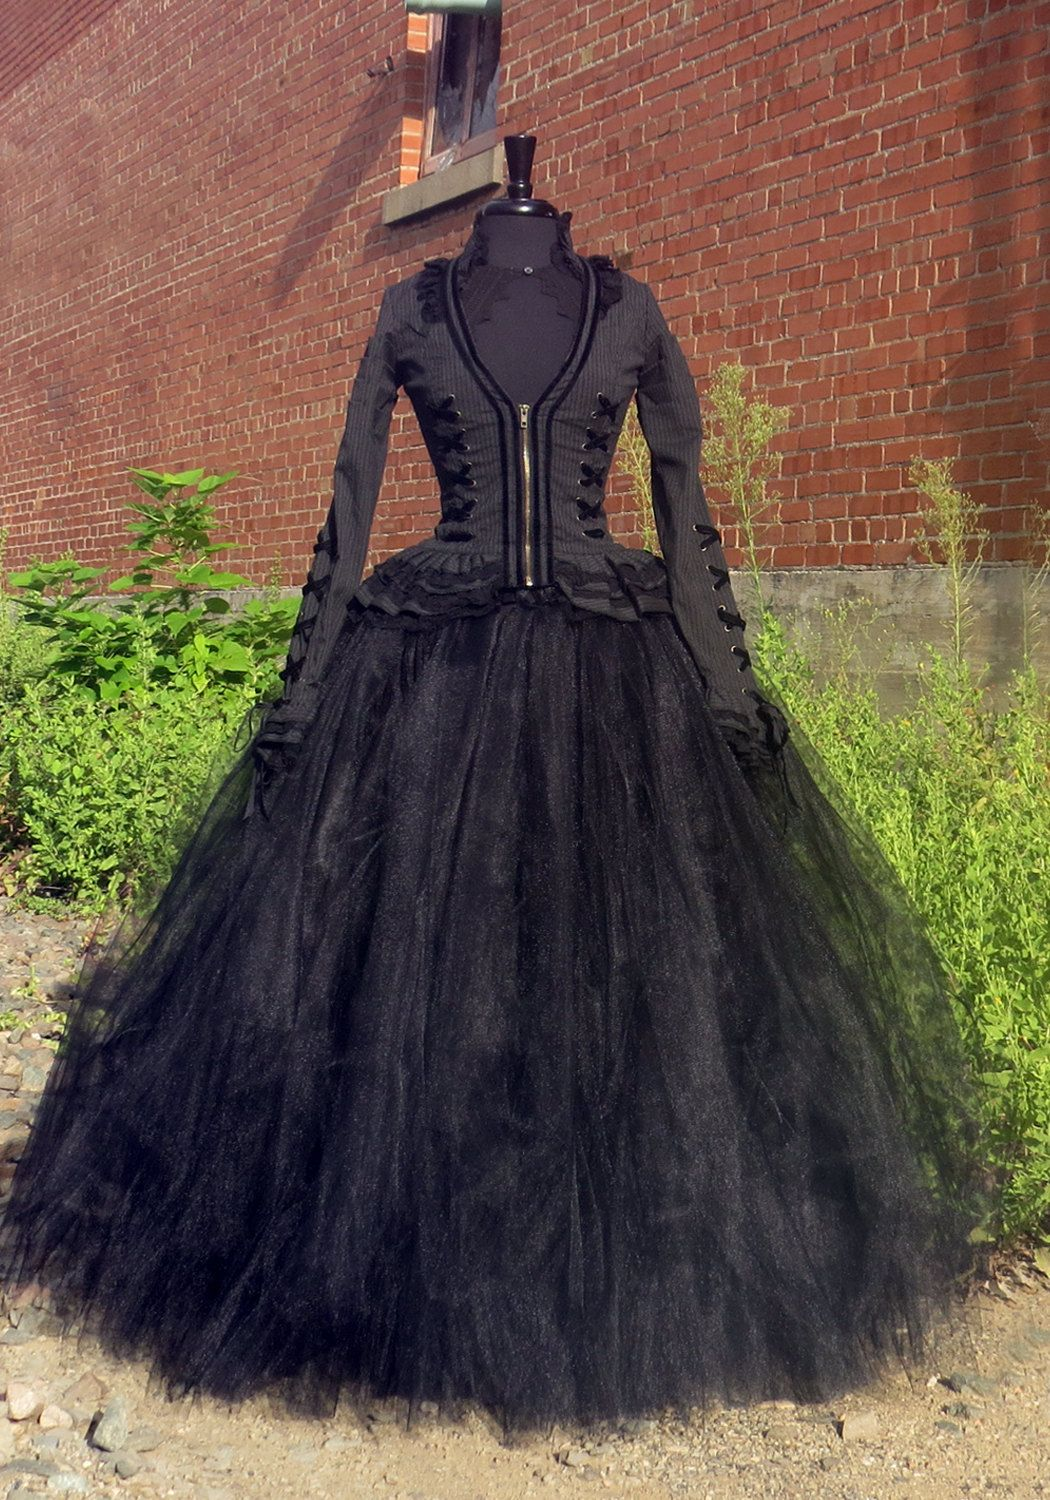 289d9cc988 Bellatrix Lestrange Costume Skirt Full length black tulle skirt for Harry  Potter Witch Halloween Costume, Cosplay. Wicked witch, Hogwarts. by…